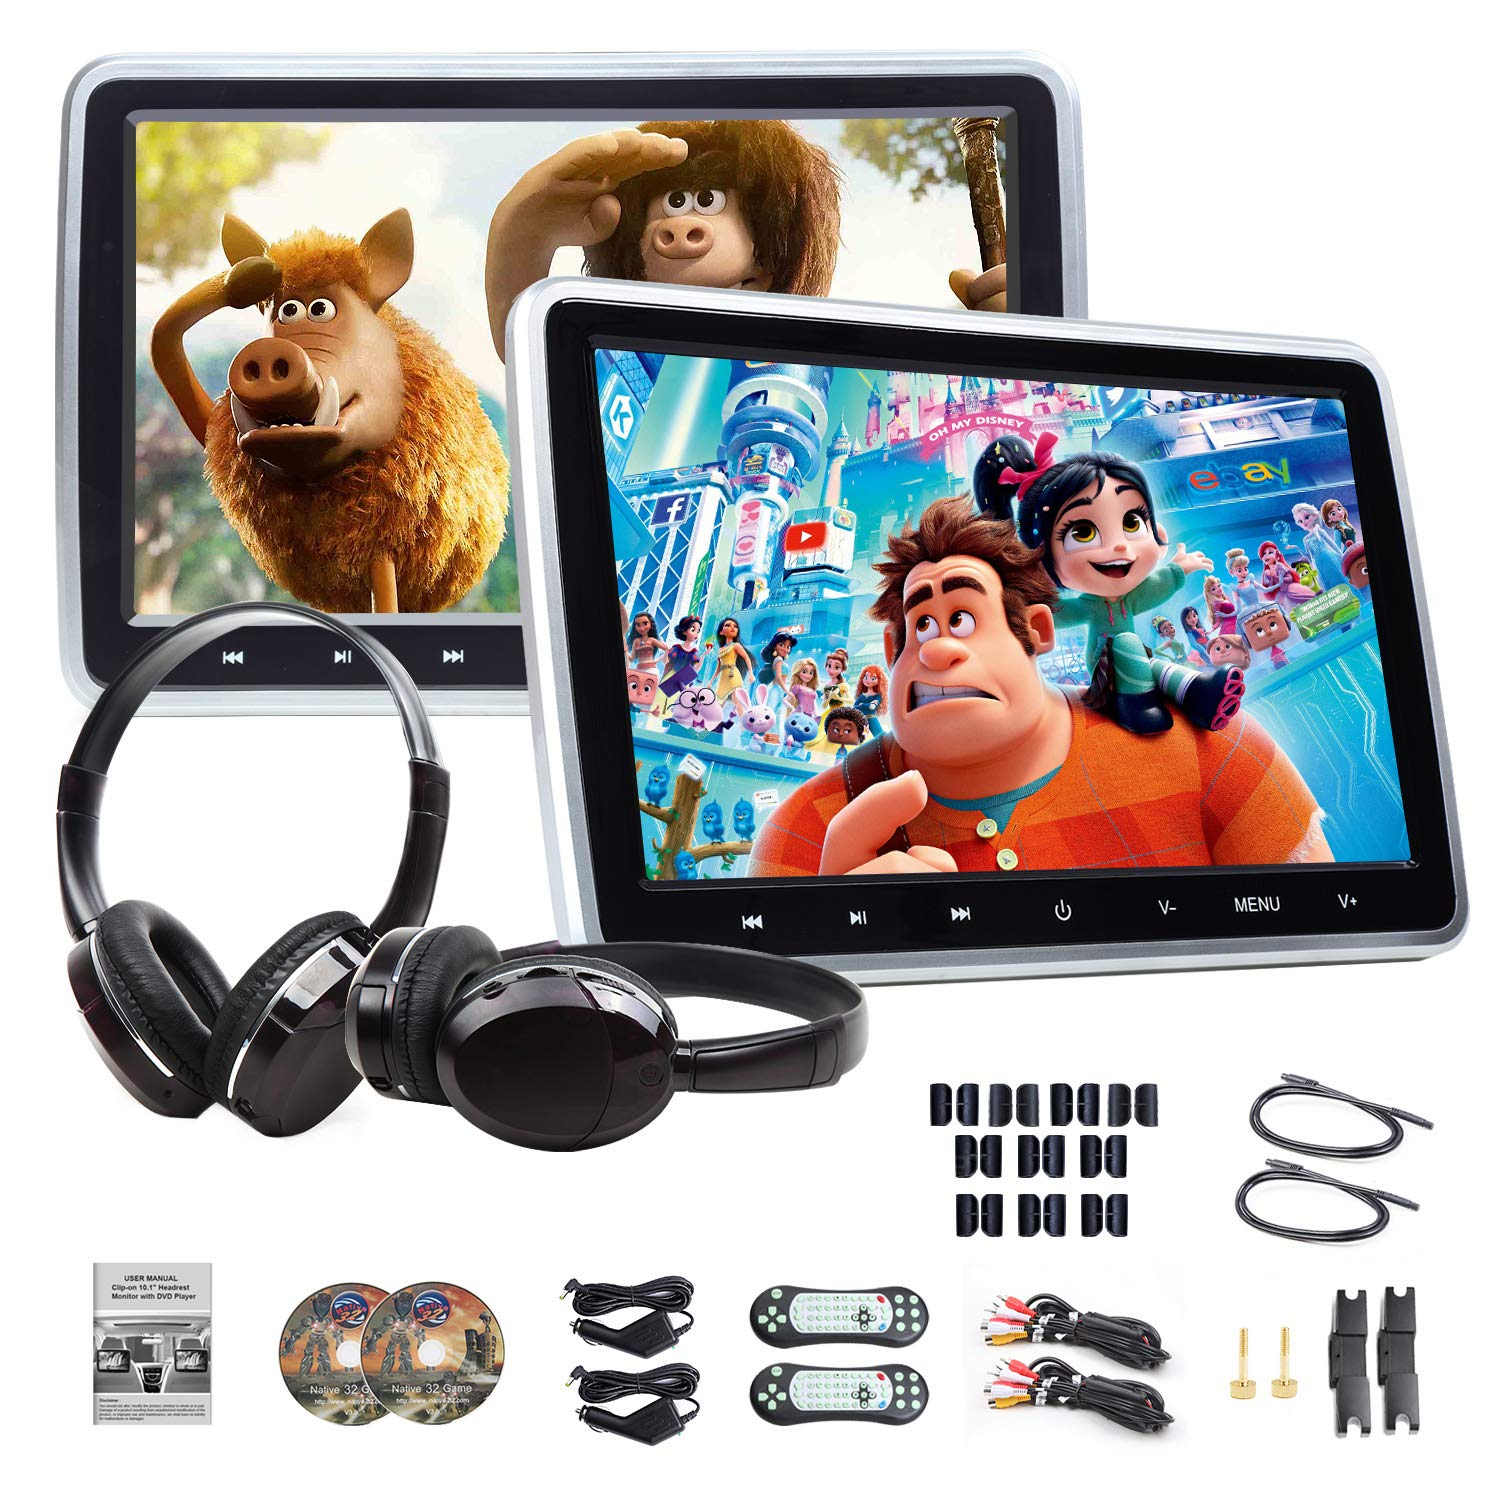 DVD Player 10.1'' Dual Car DVD Players with 2 Headphones Car Headrest Monitors Eonon C1100A Portable DVD Player for Kids Support Same/Different Video Playing/AV Out & in HDMI USB SD Port Touch Button by Eonon